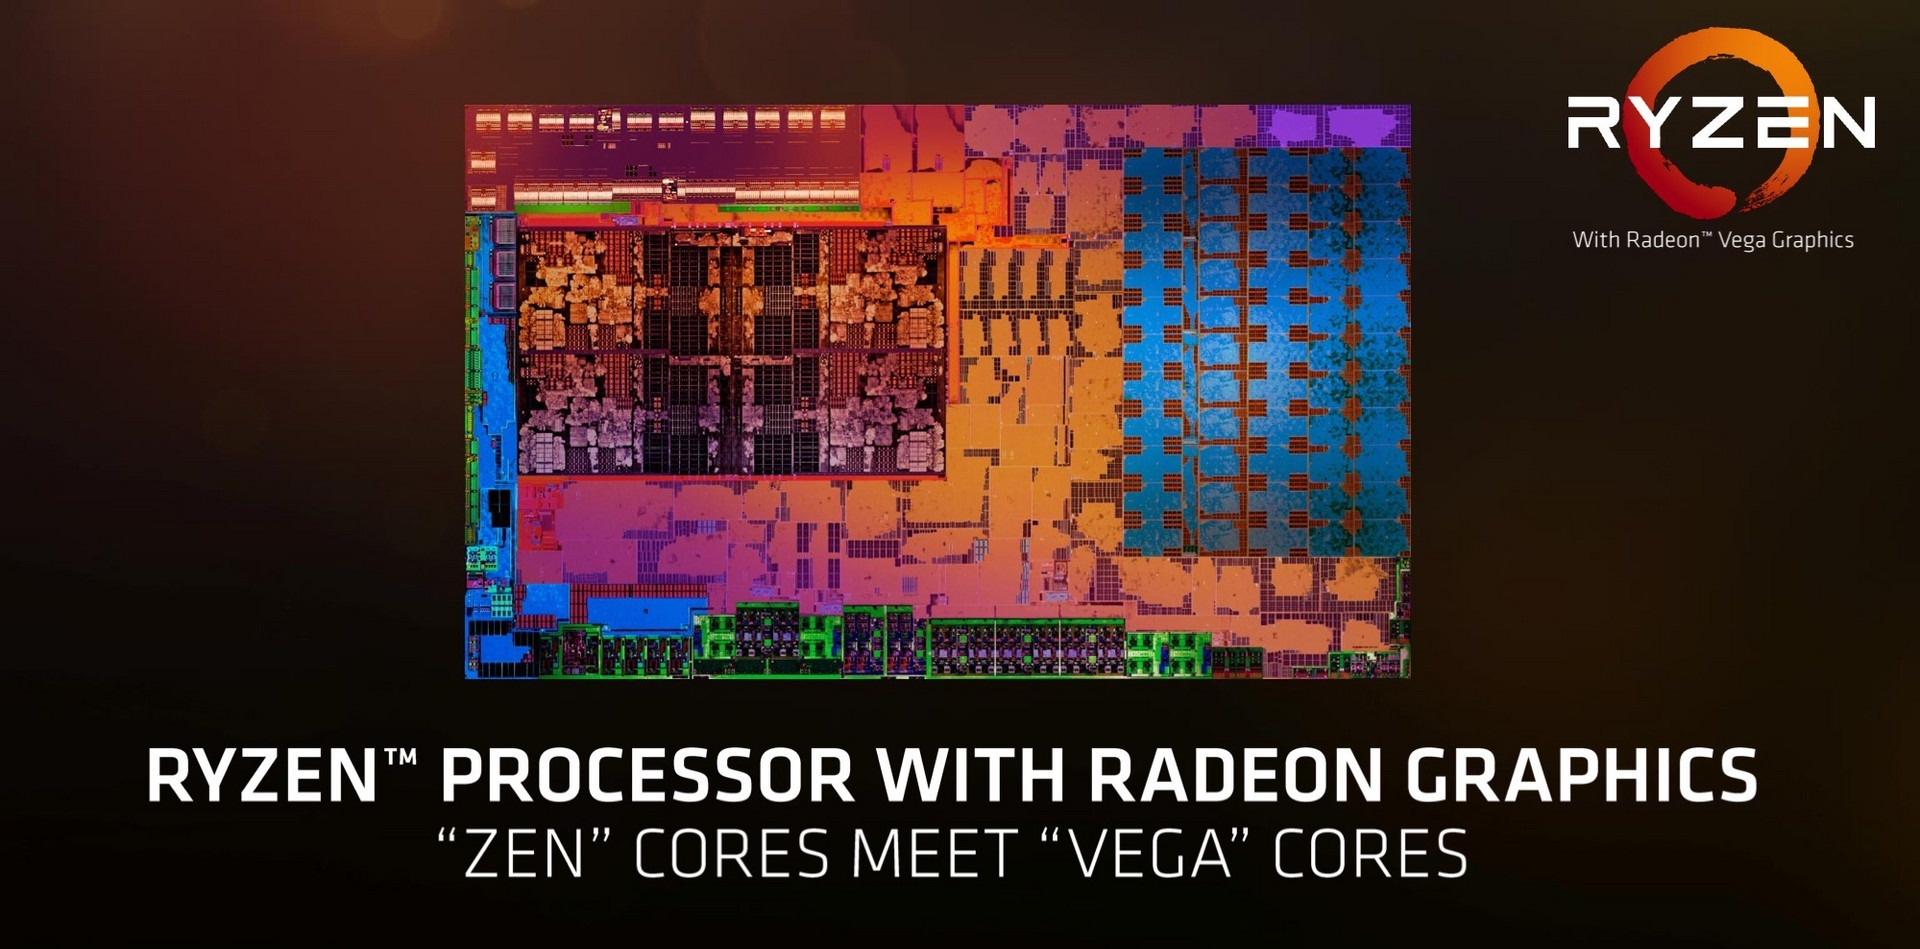 AMD Will Be Launching The Ryzen 3000 Series CPUs, APUs And A